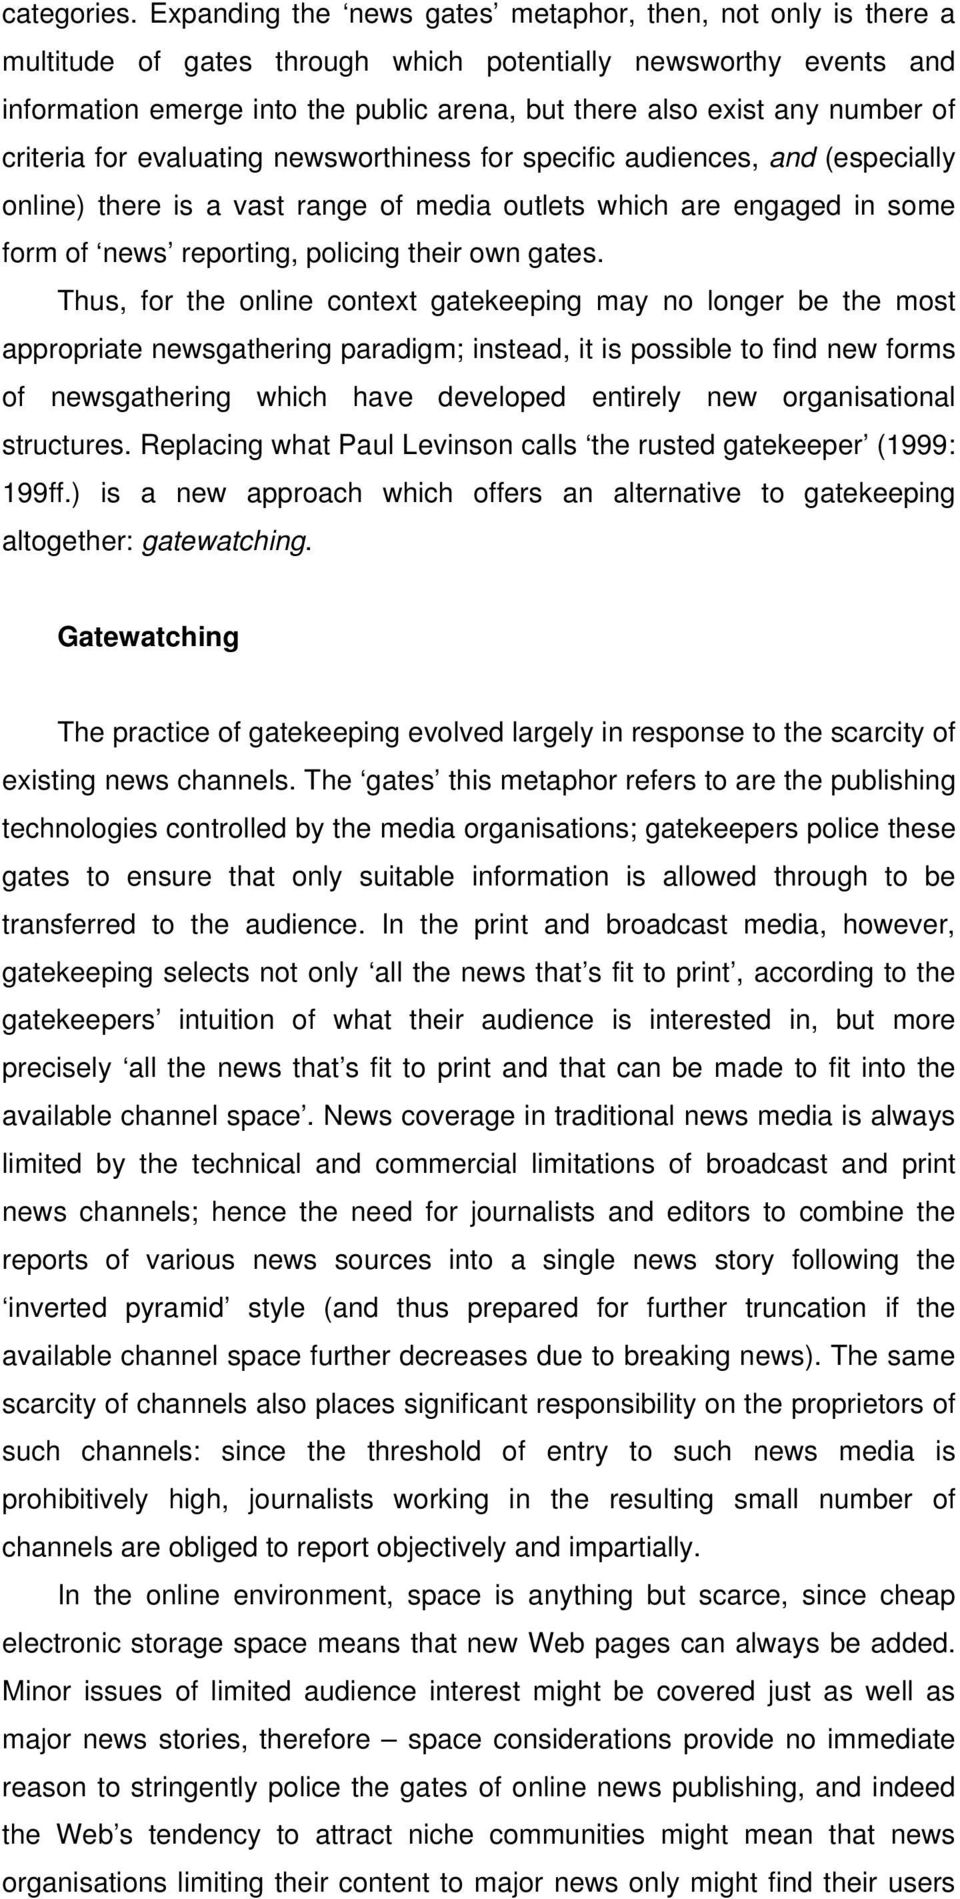 number of criteria for evaluating newsworthiness for specific audiences, and (especially online) there is a vast range of media outlets which are engaged in some form of news reporting, policing